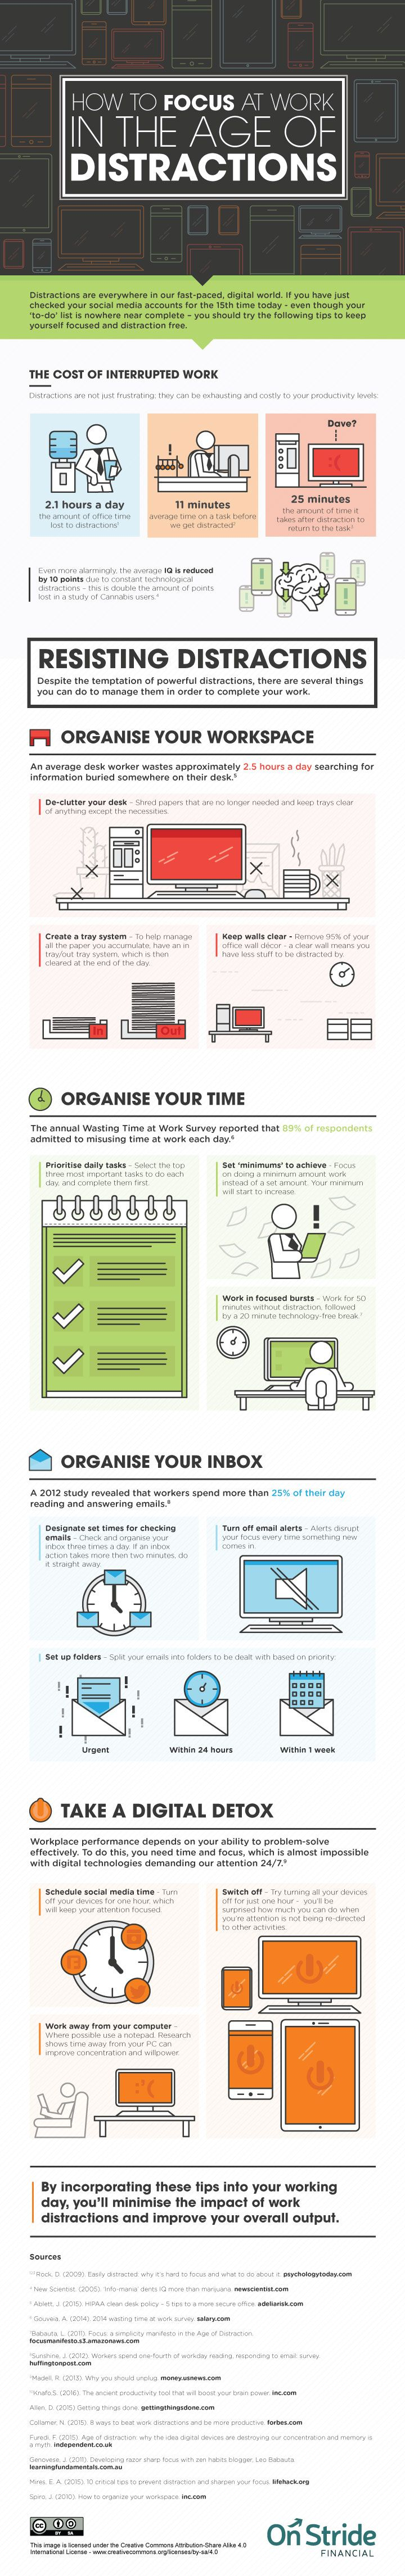 How to Focus at Work in the Age of Distractions #Infographic